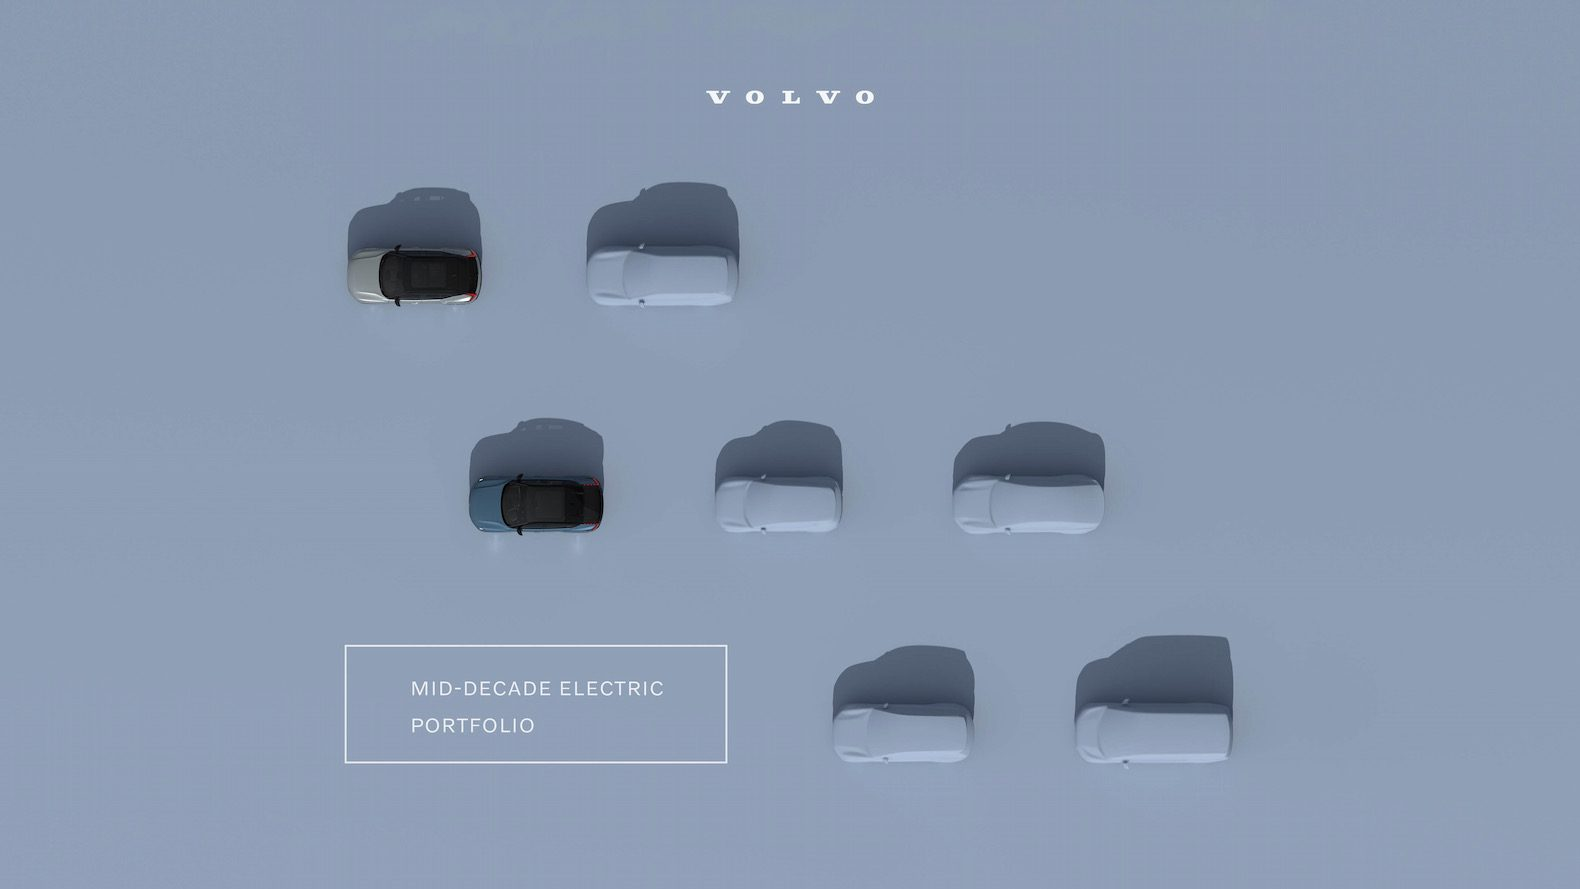 Volvo electric lineup